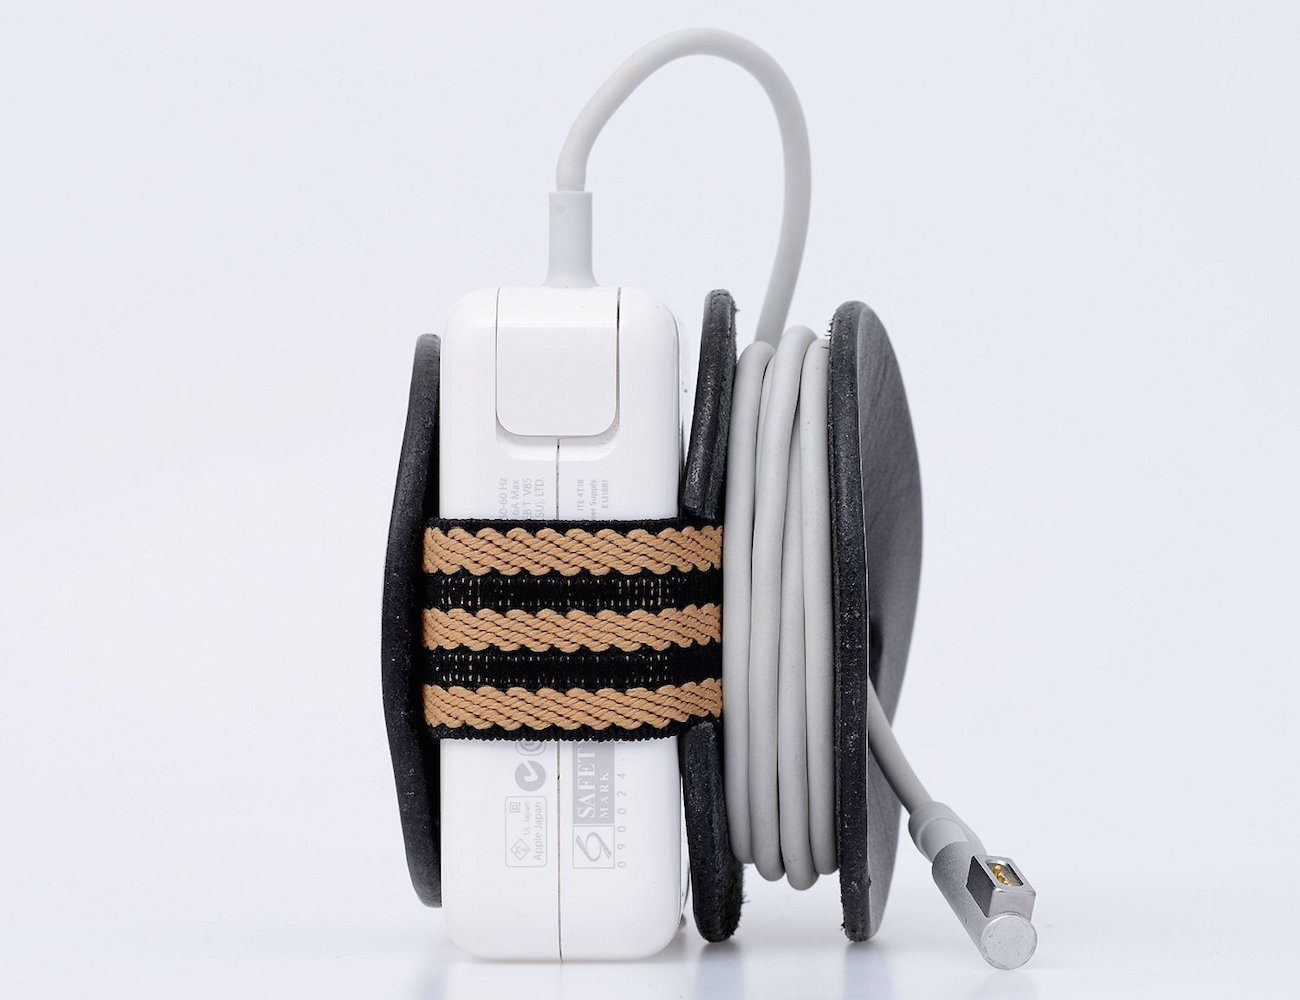 PowerPlay – Macbook Adapter Cord Organizer